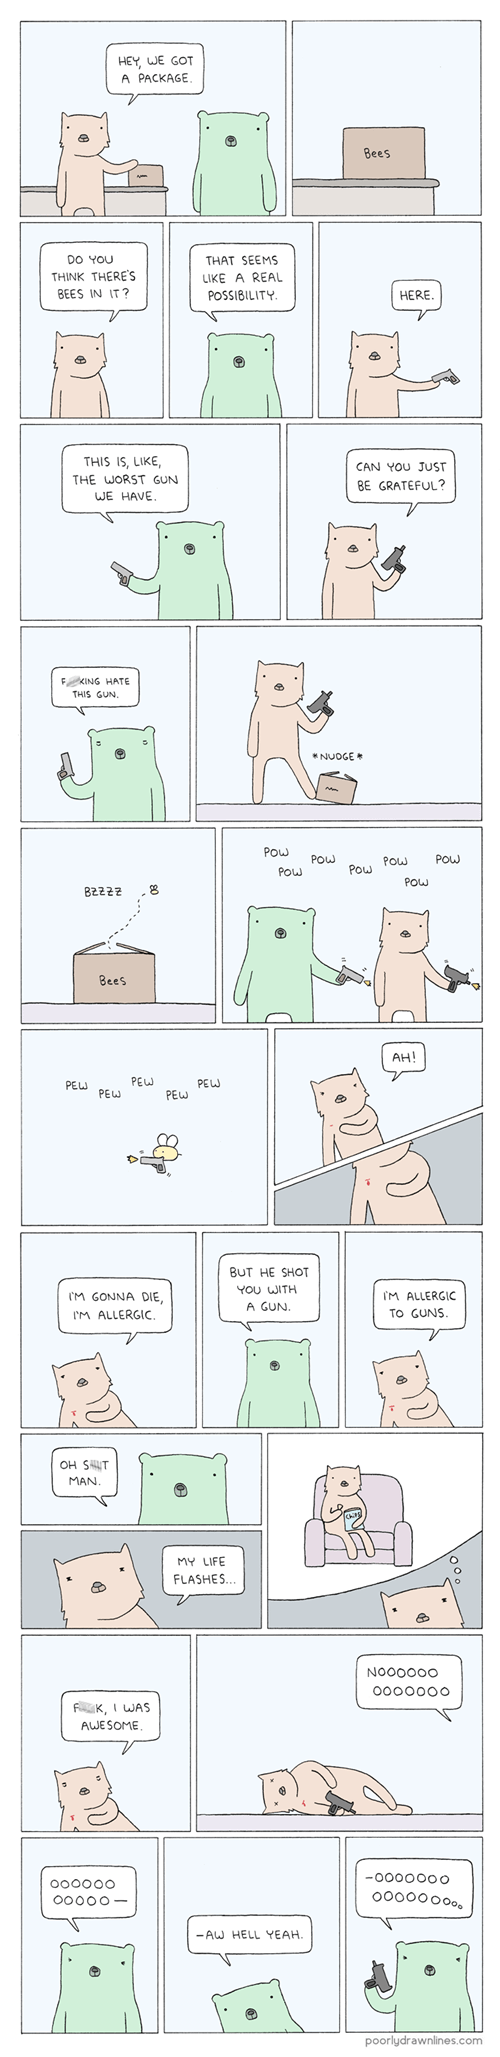 guns bears awesome bees web comics - 8270481920